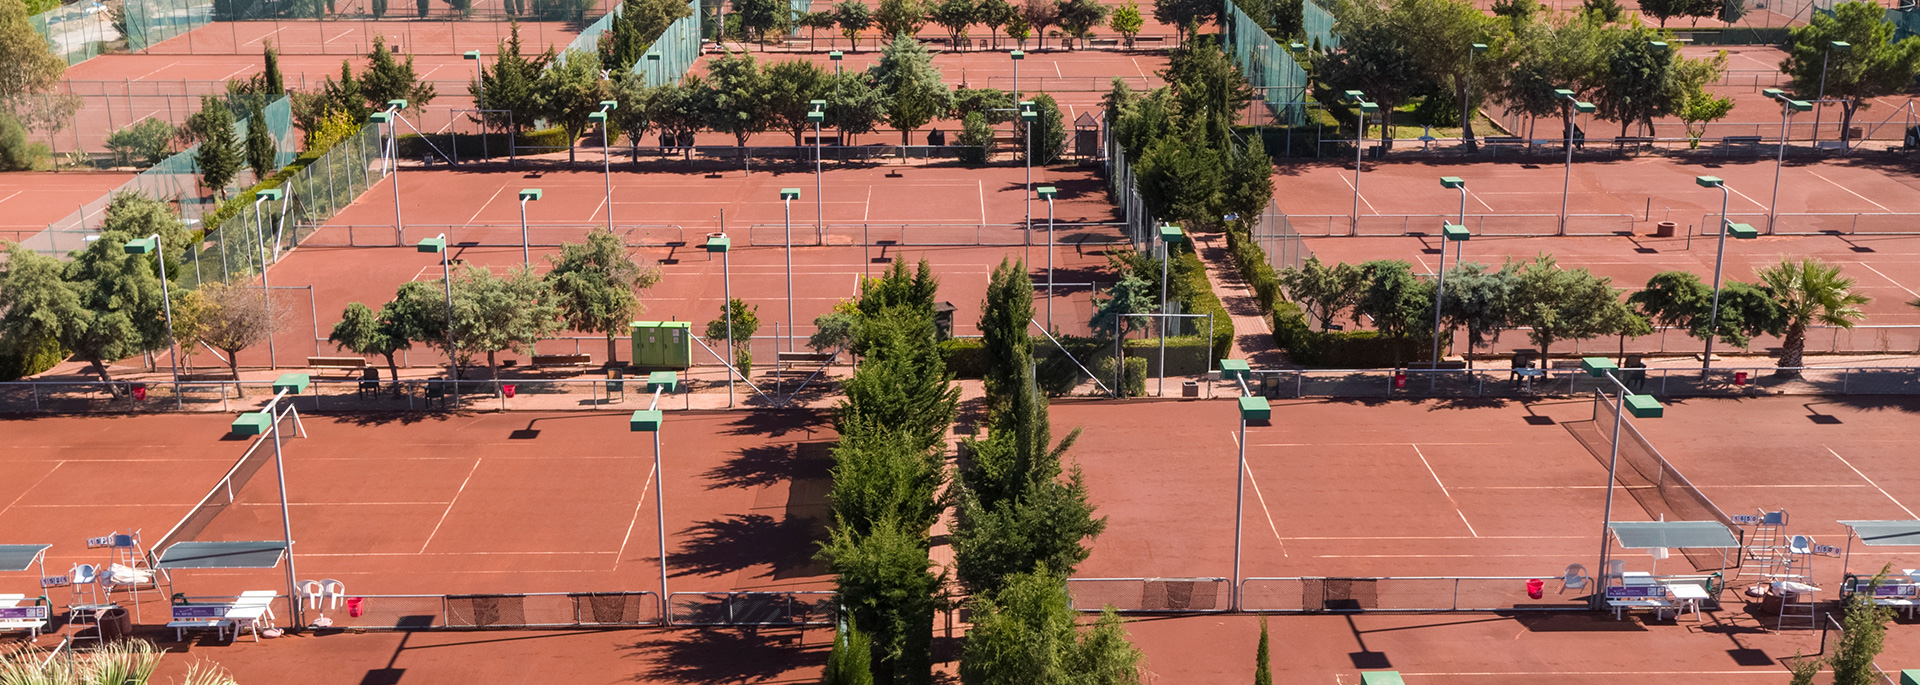 Tennis - Ali Bey Park Manavgat - Side, Antalya, Turkey